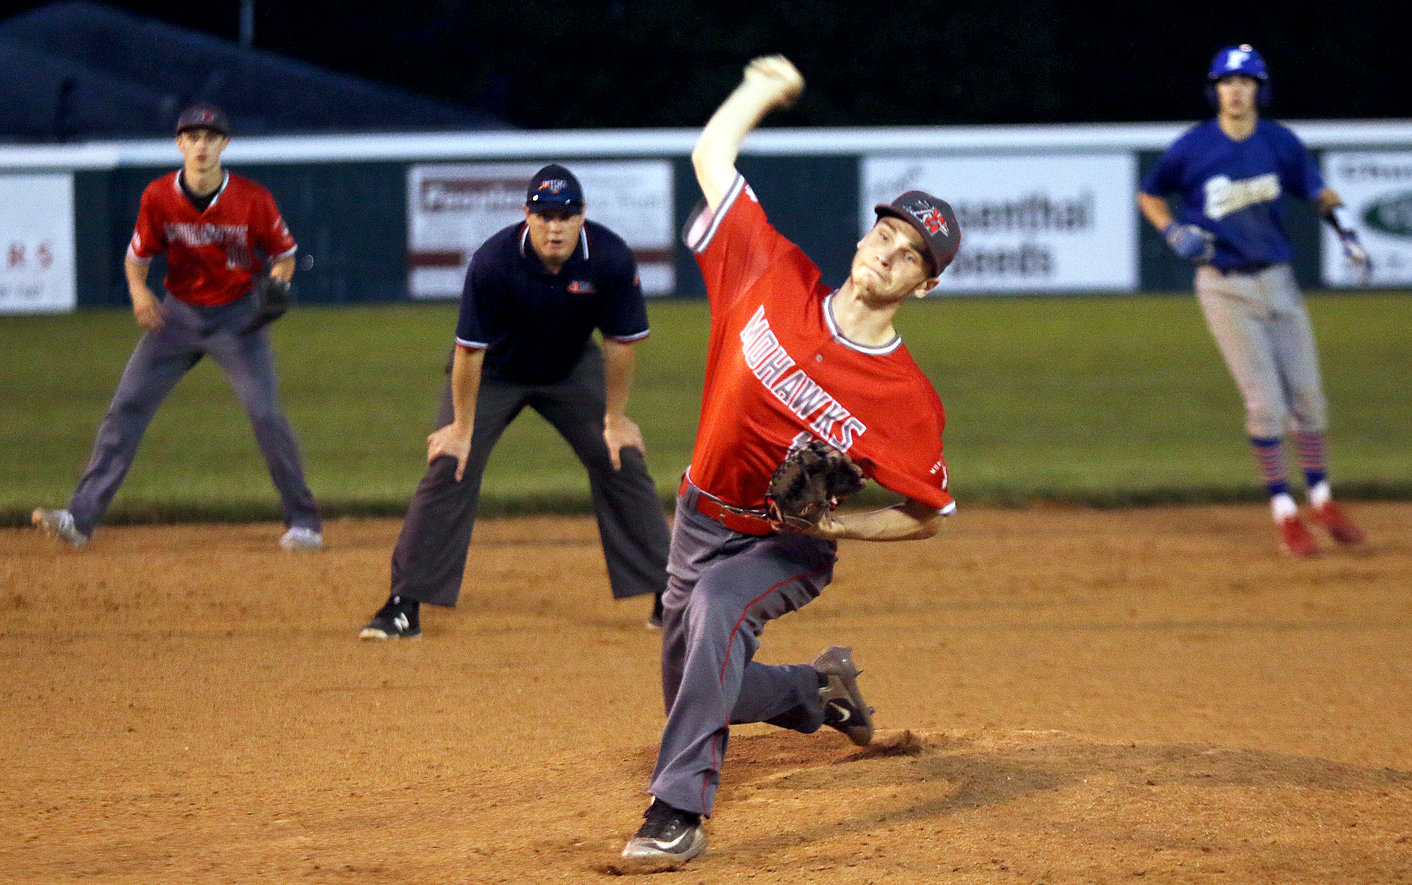 Morrisonville's Kyle Bloome makes his delivery toward home plate during the Mohawks' regional game against Pawnee on Thursday, May 16. Pawnee would go on to beat the Mohawks 8-1, ending Morrisonville's season with a record of 7-19.